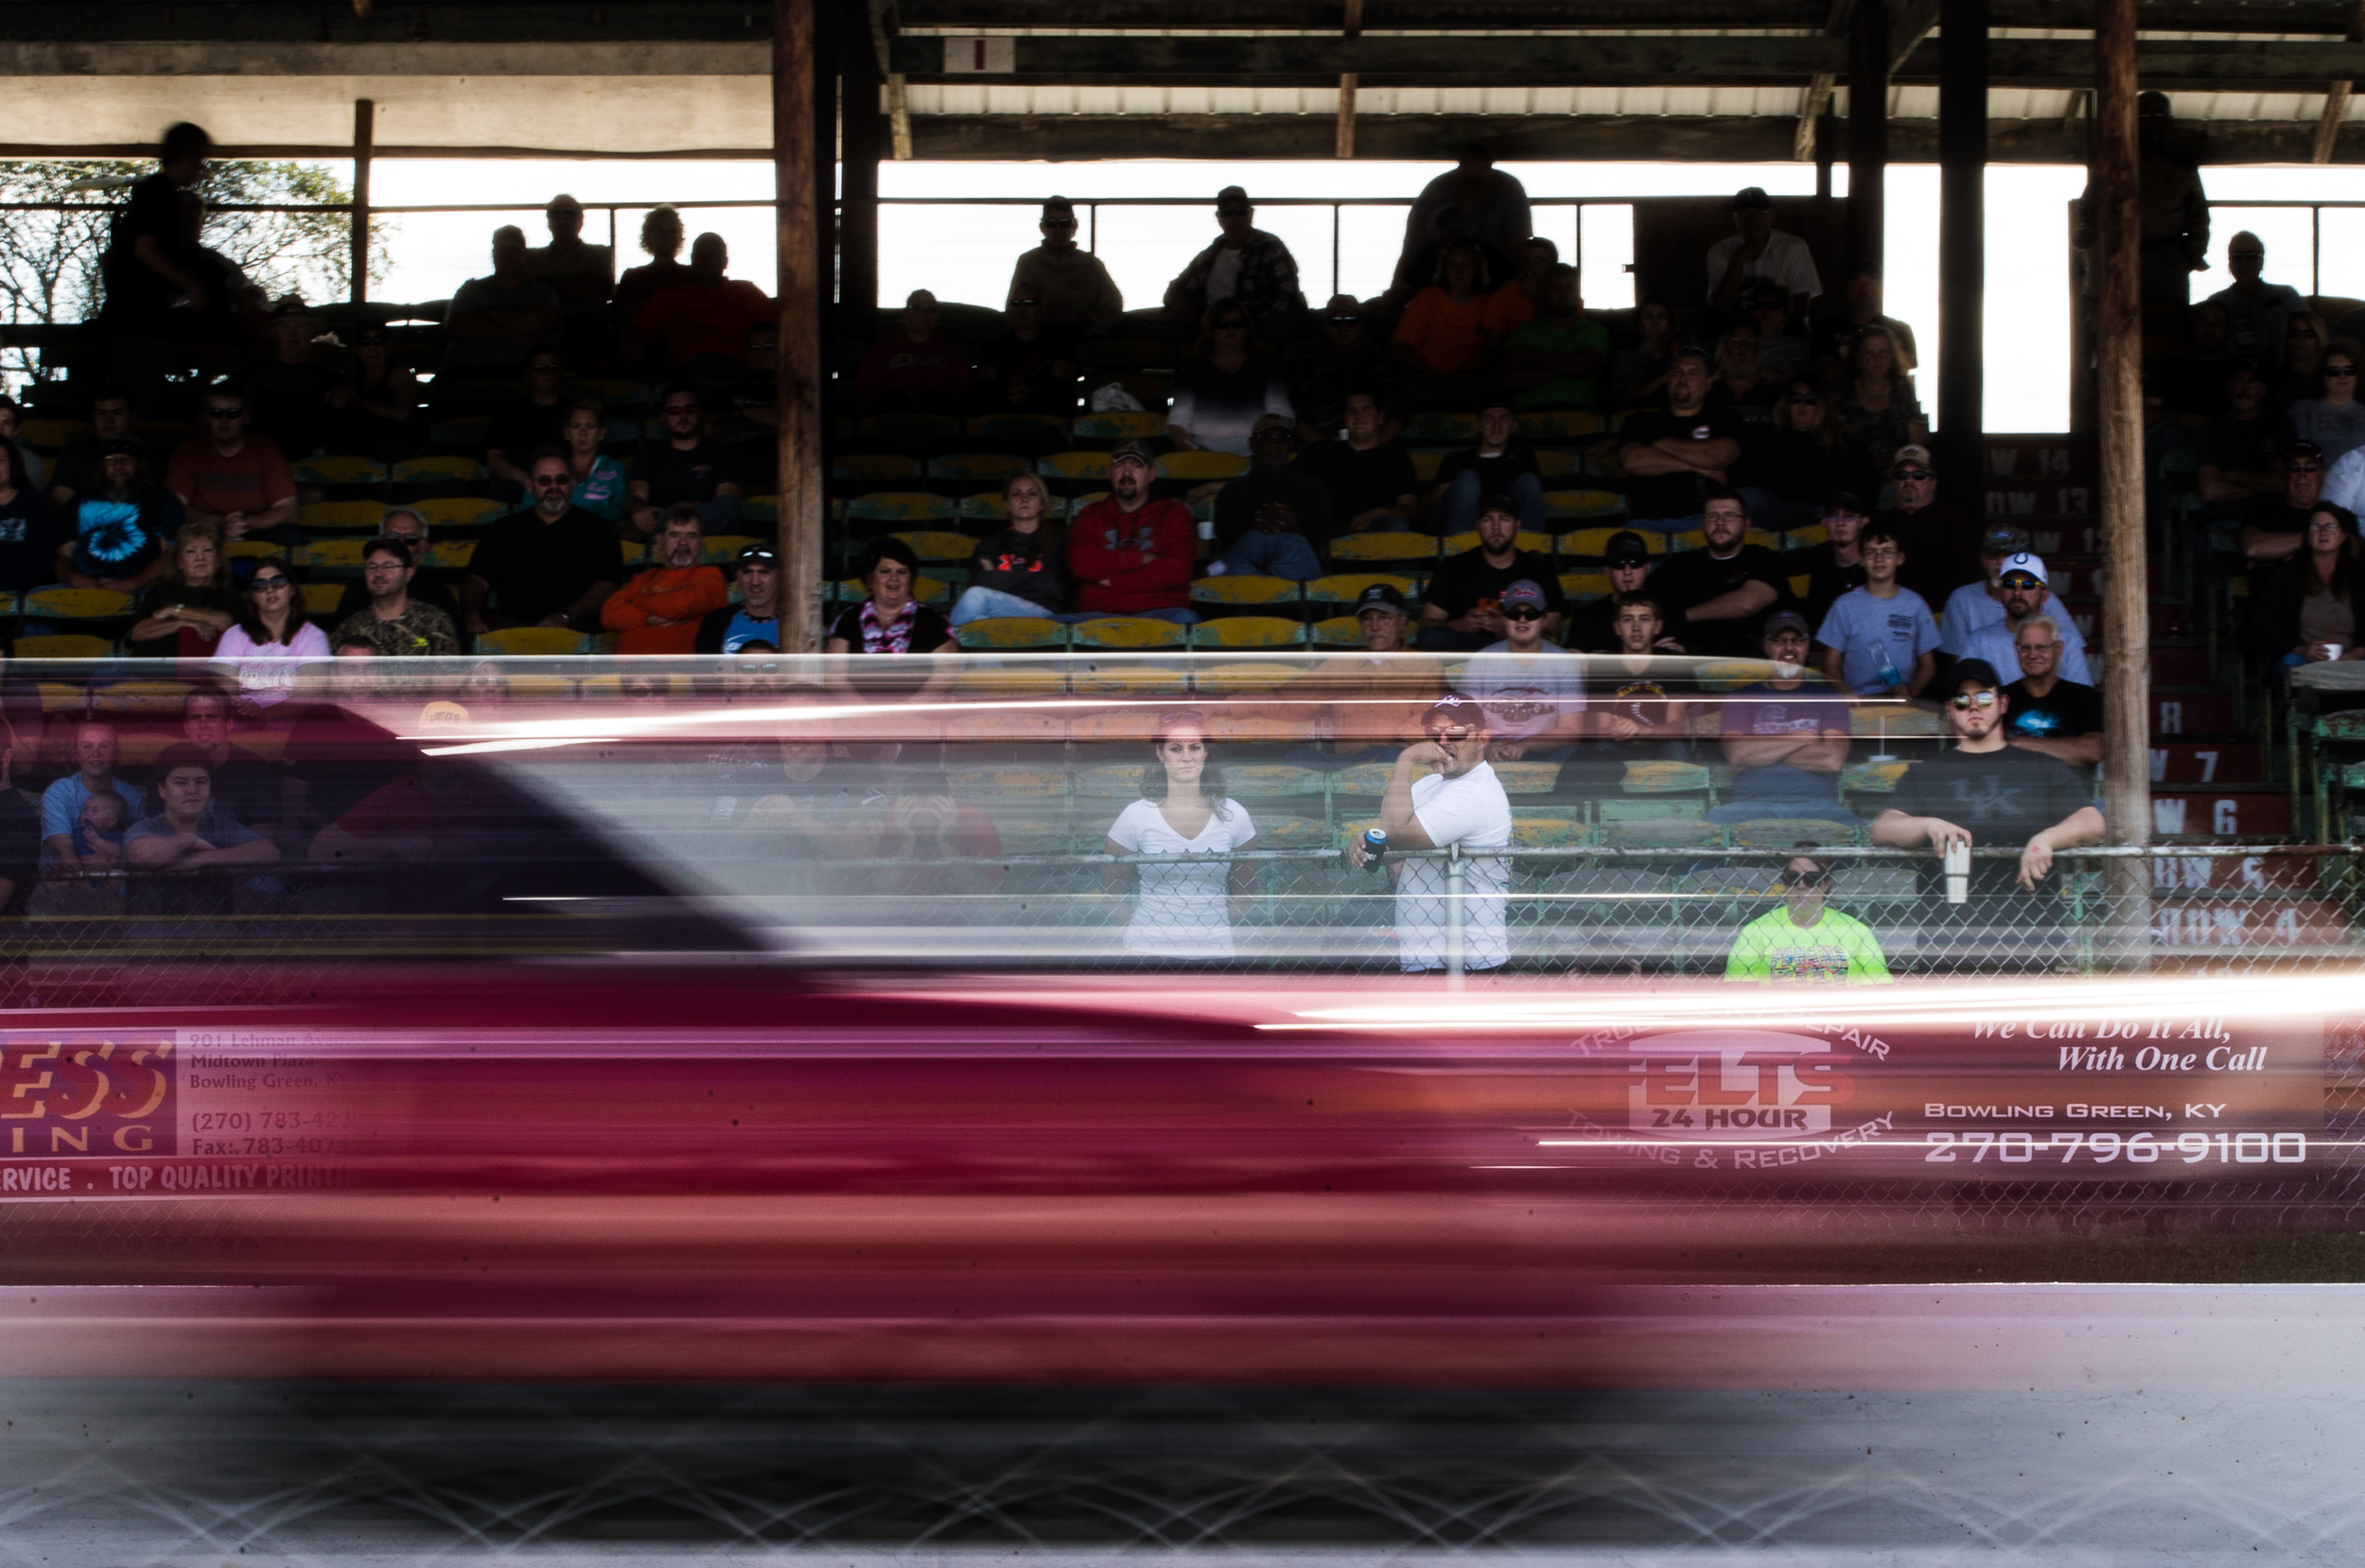 Racers and fans packed the Beech Bend Raceway Park, which hosted the 17th annual NMRA All Ford World Finals from October 1-4, 2015, in Bowling Green, Kentucky.